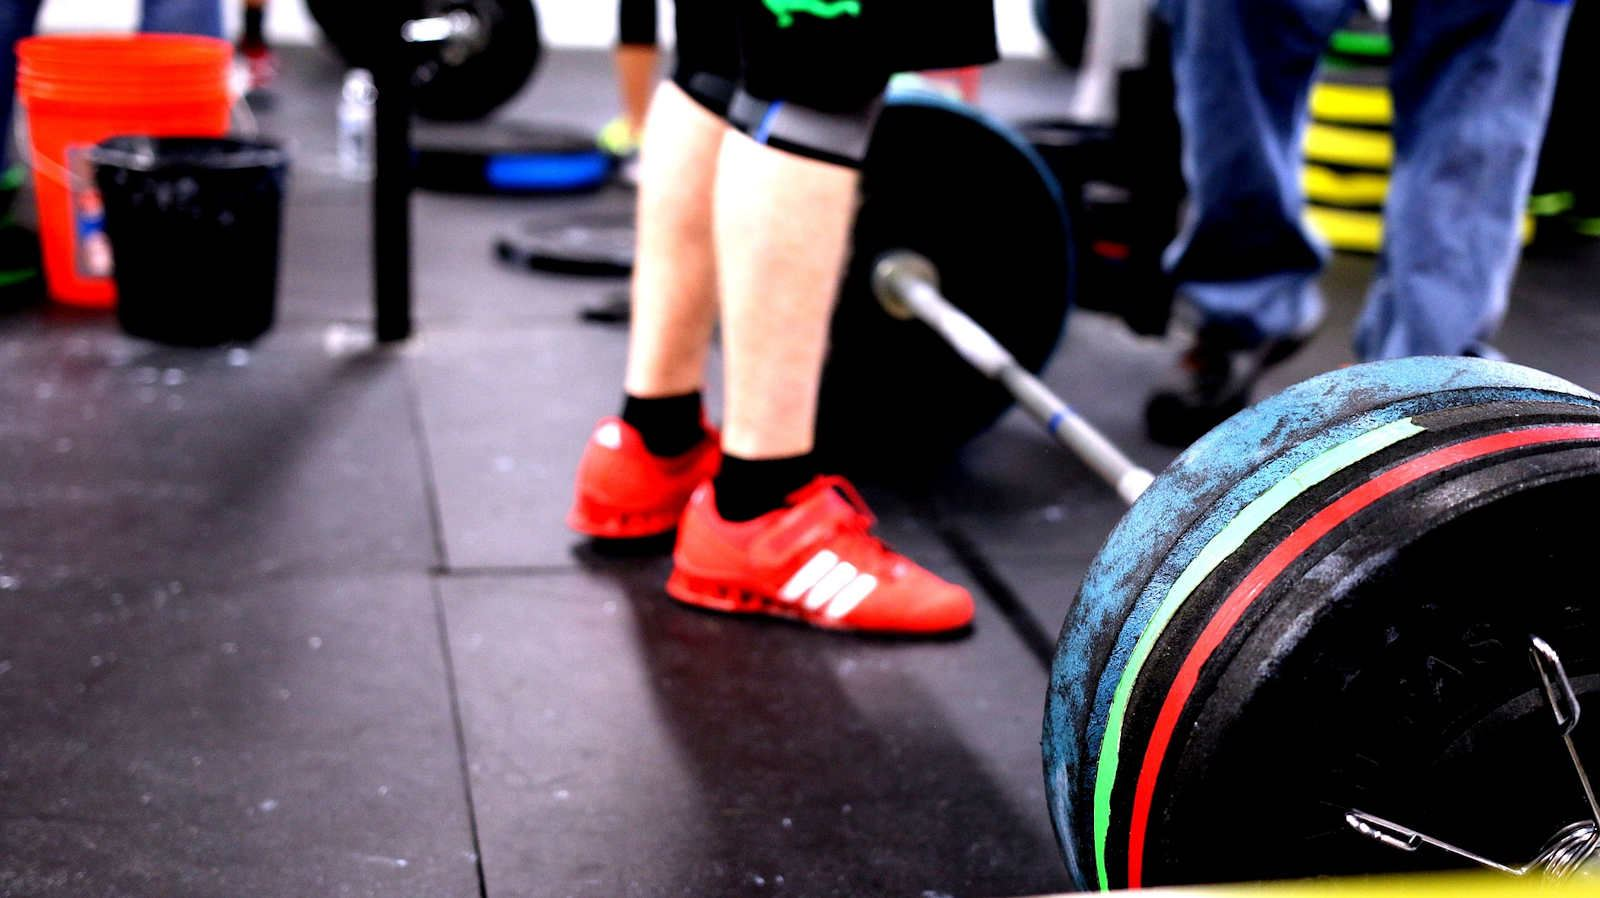 Southern CrossFit of Willetton